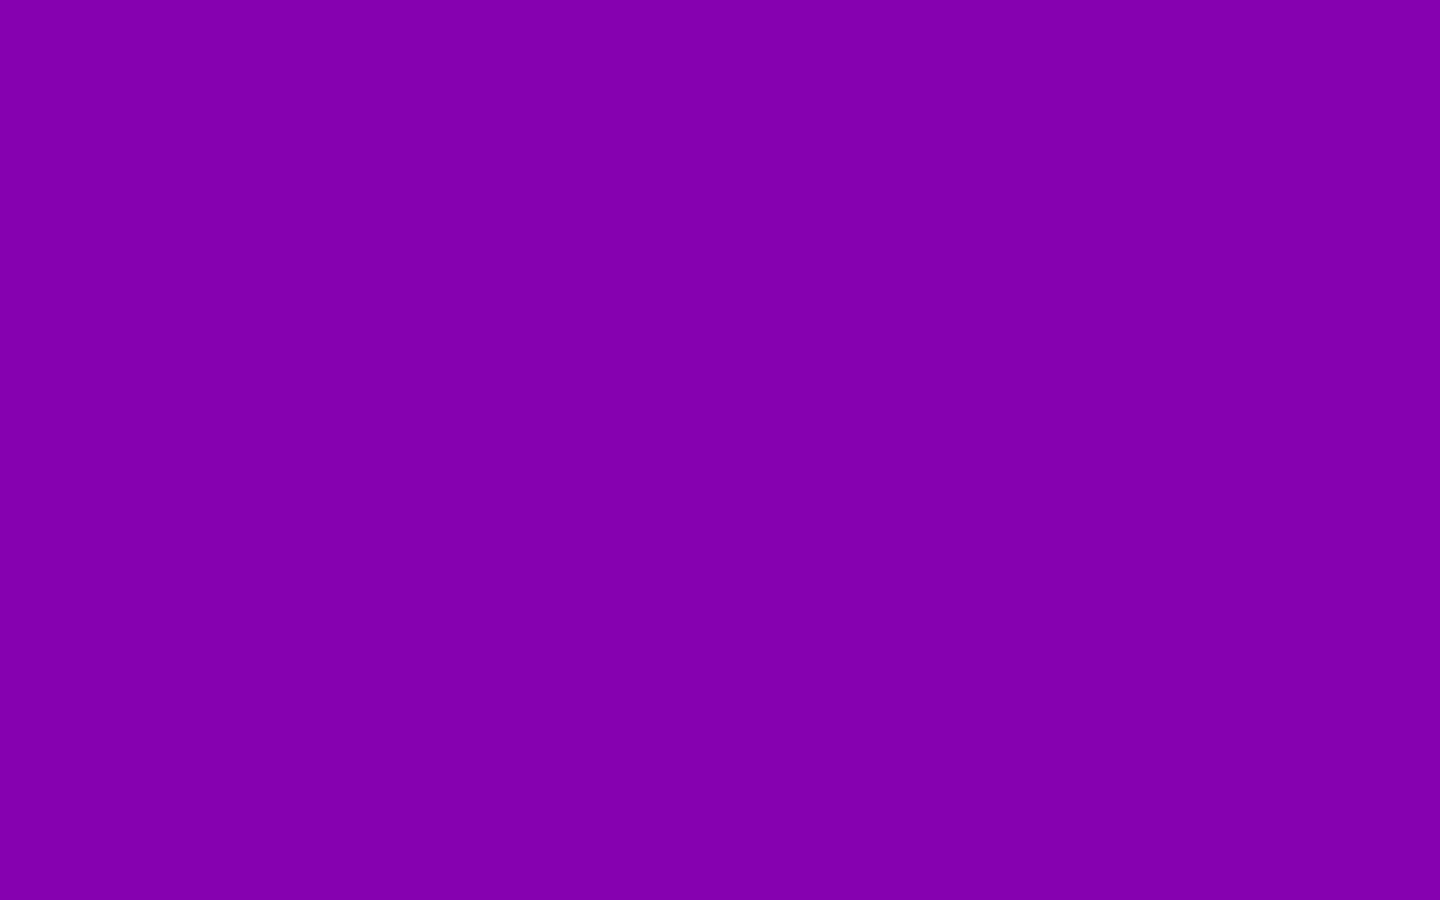 1440x900 Violet RYB Solid Color Background